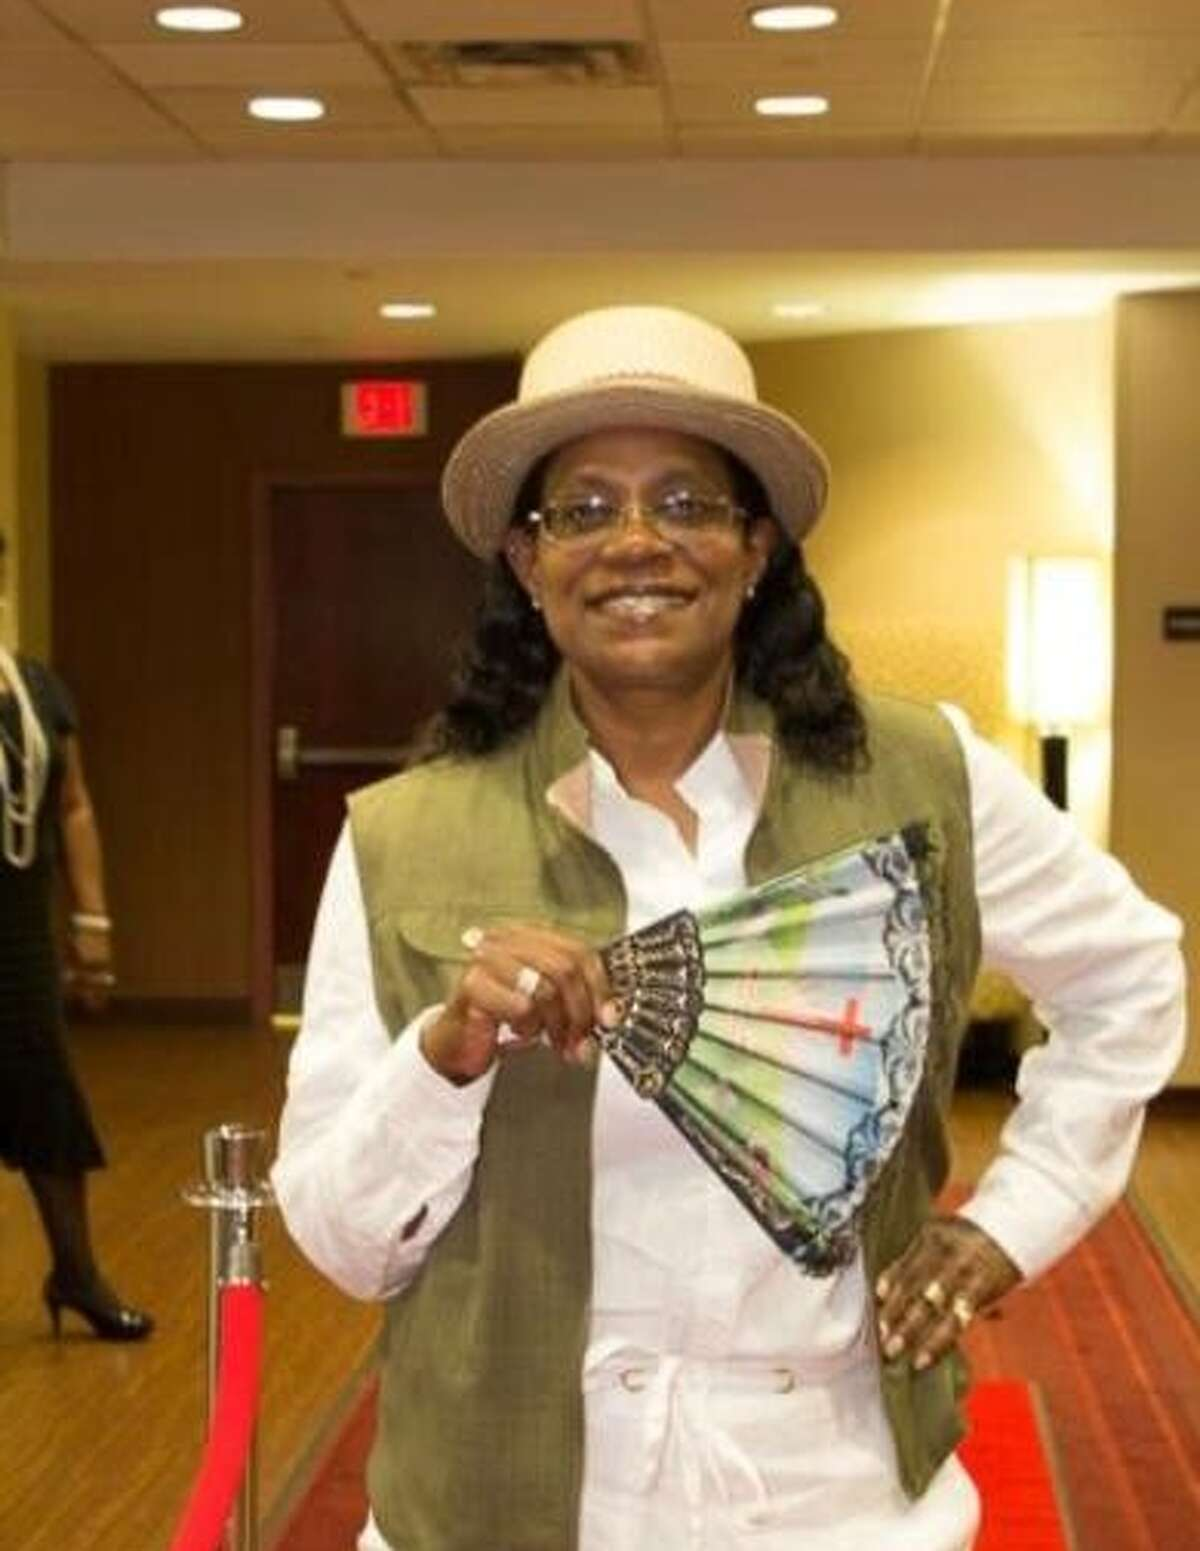 Albany native Clarissa Collins passed away last month. (Contributed photo)